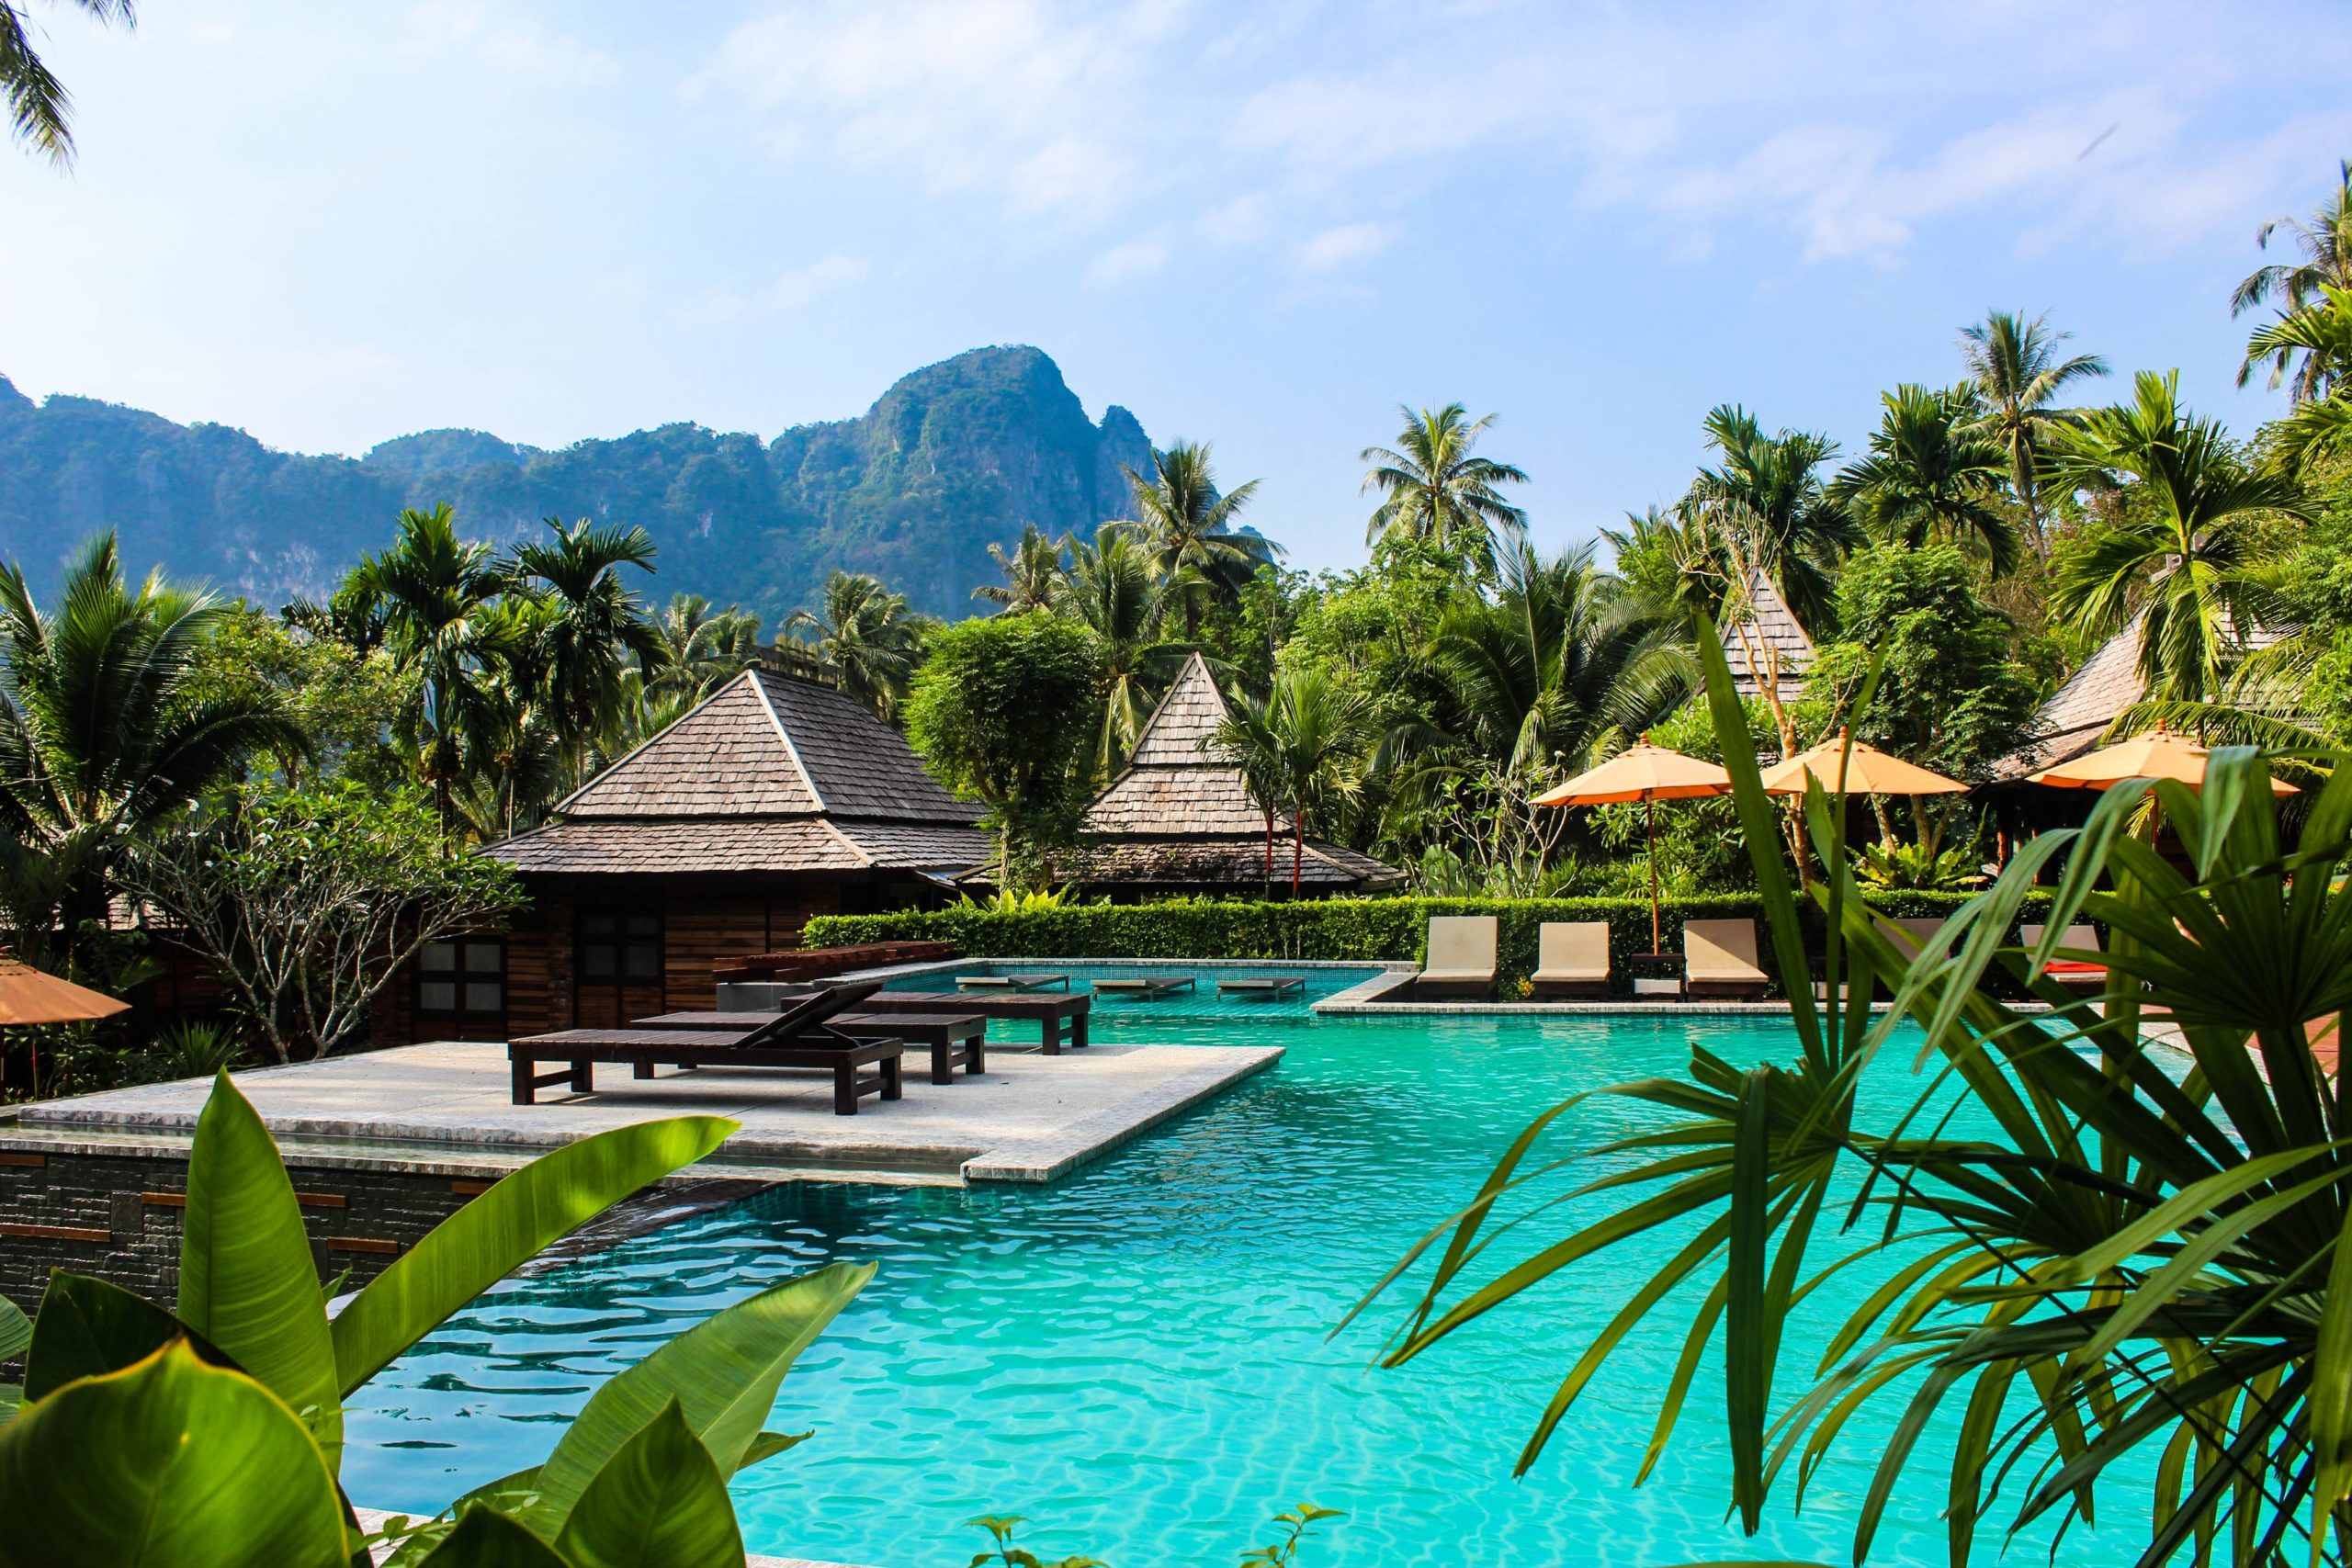 Top 5 Most Beautiful and Unique Luxury Villas in Thailand